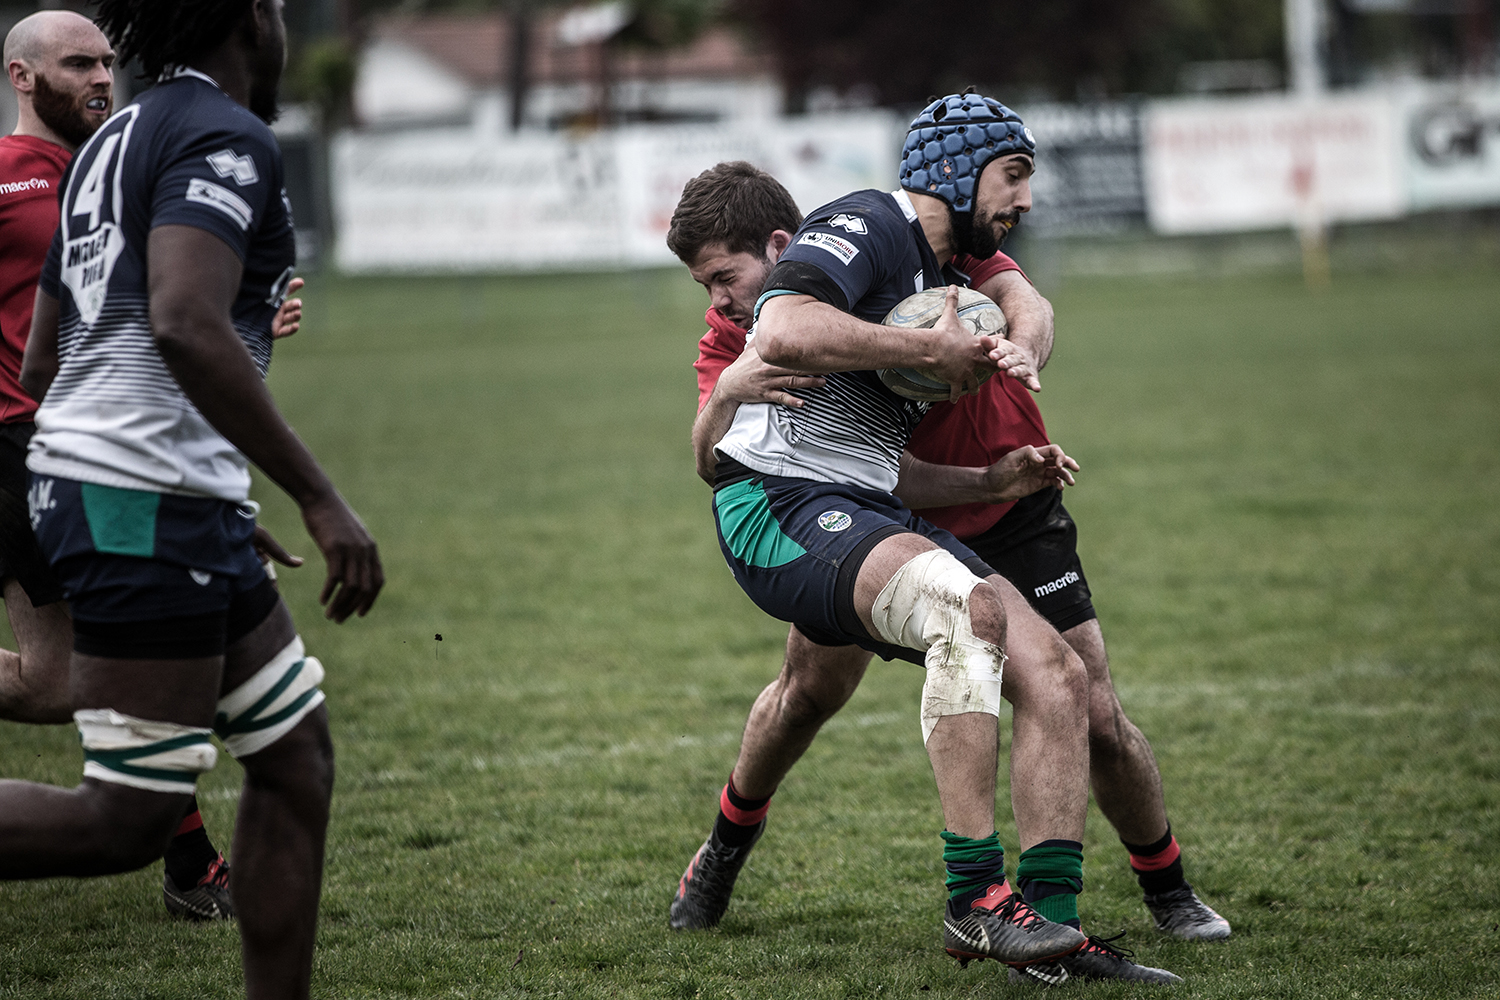 rugby_photograph_16.jpg